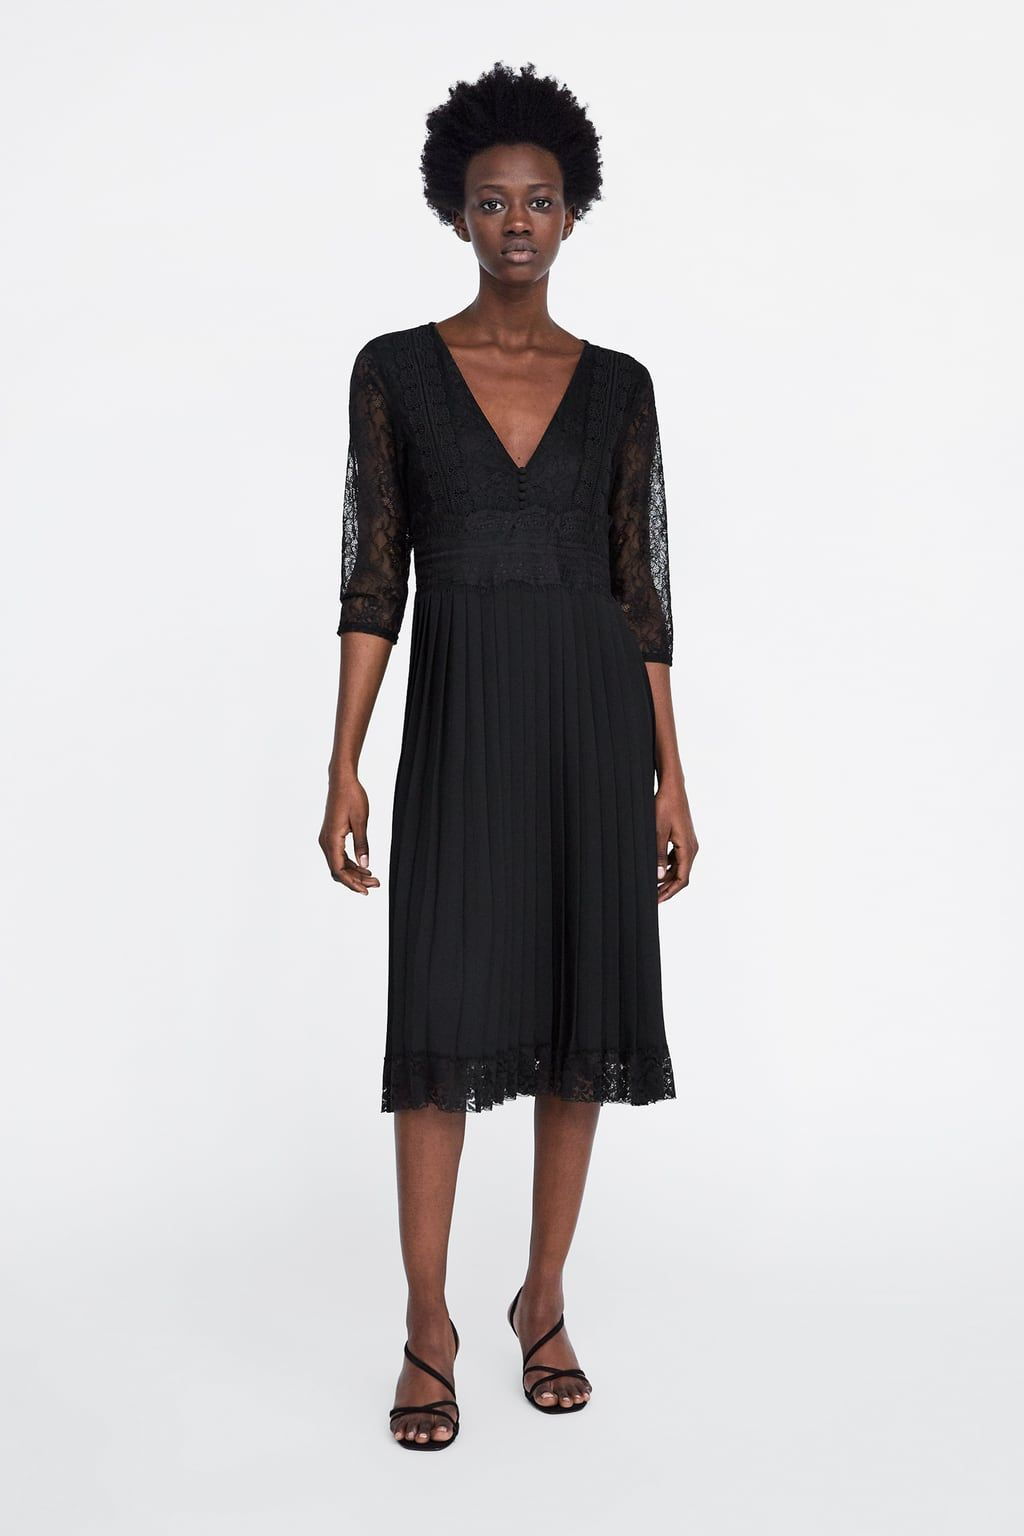 73b649a70e922 Contrasting pleated dress with lace in 2019 | Mom style | Dresses ...